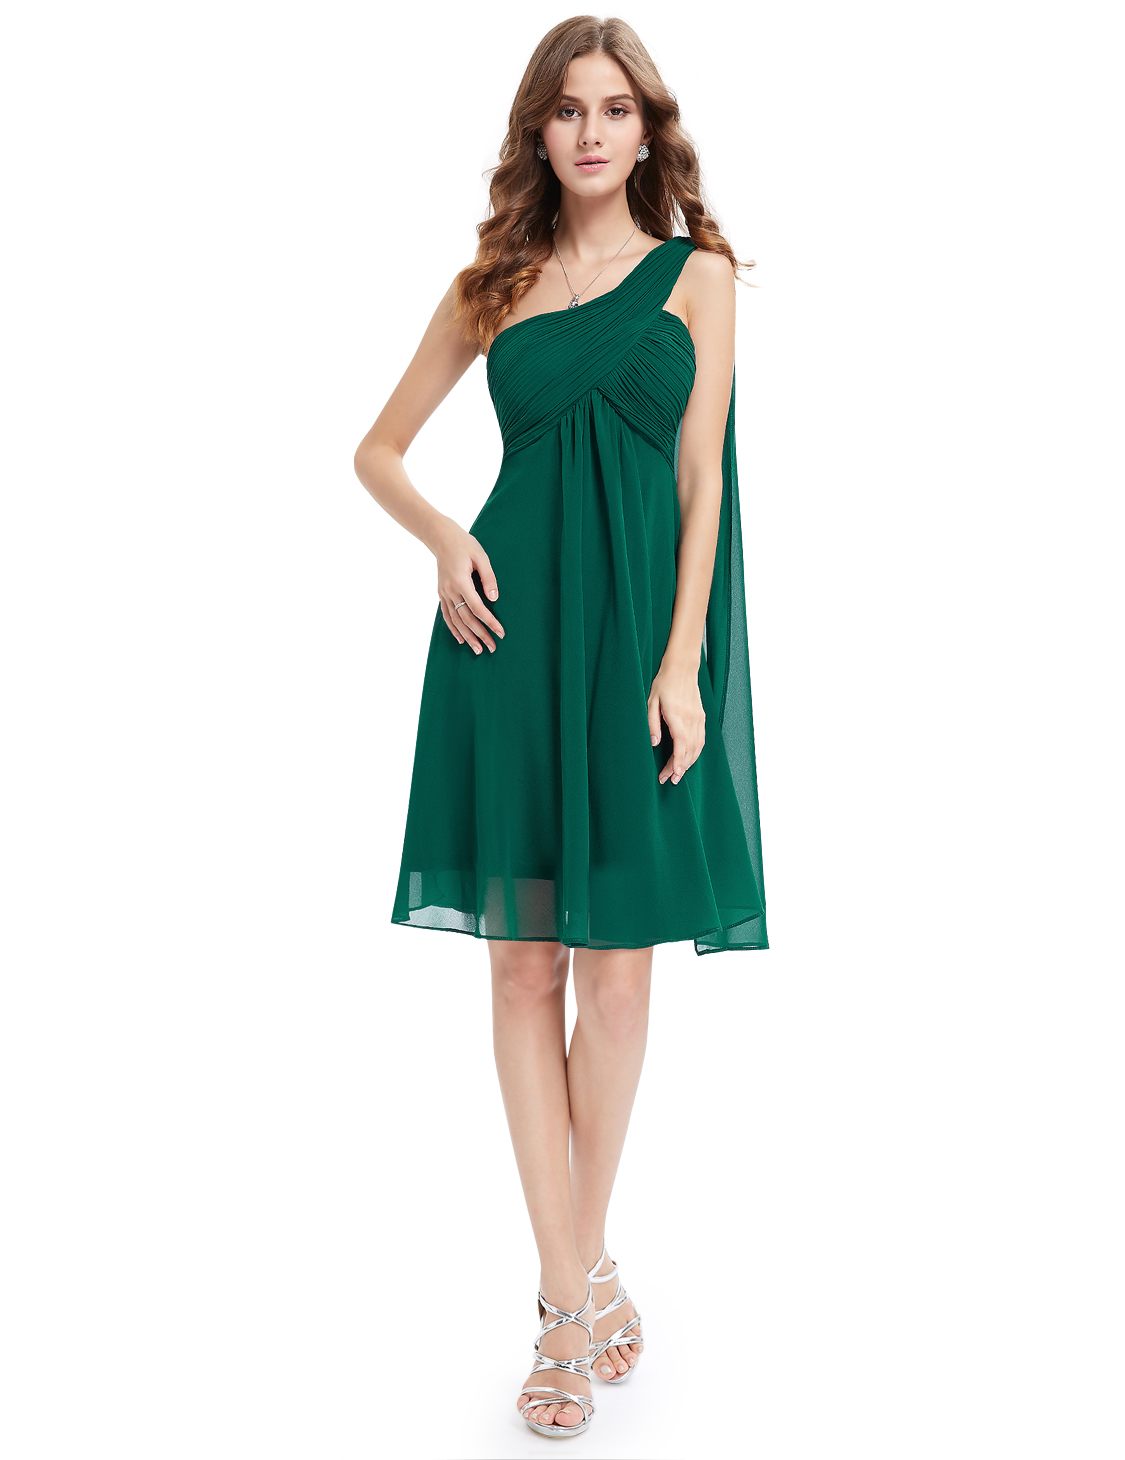 Cocktail Dresses Ebay Canada 81